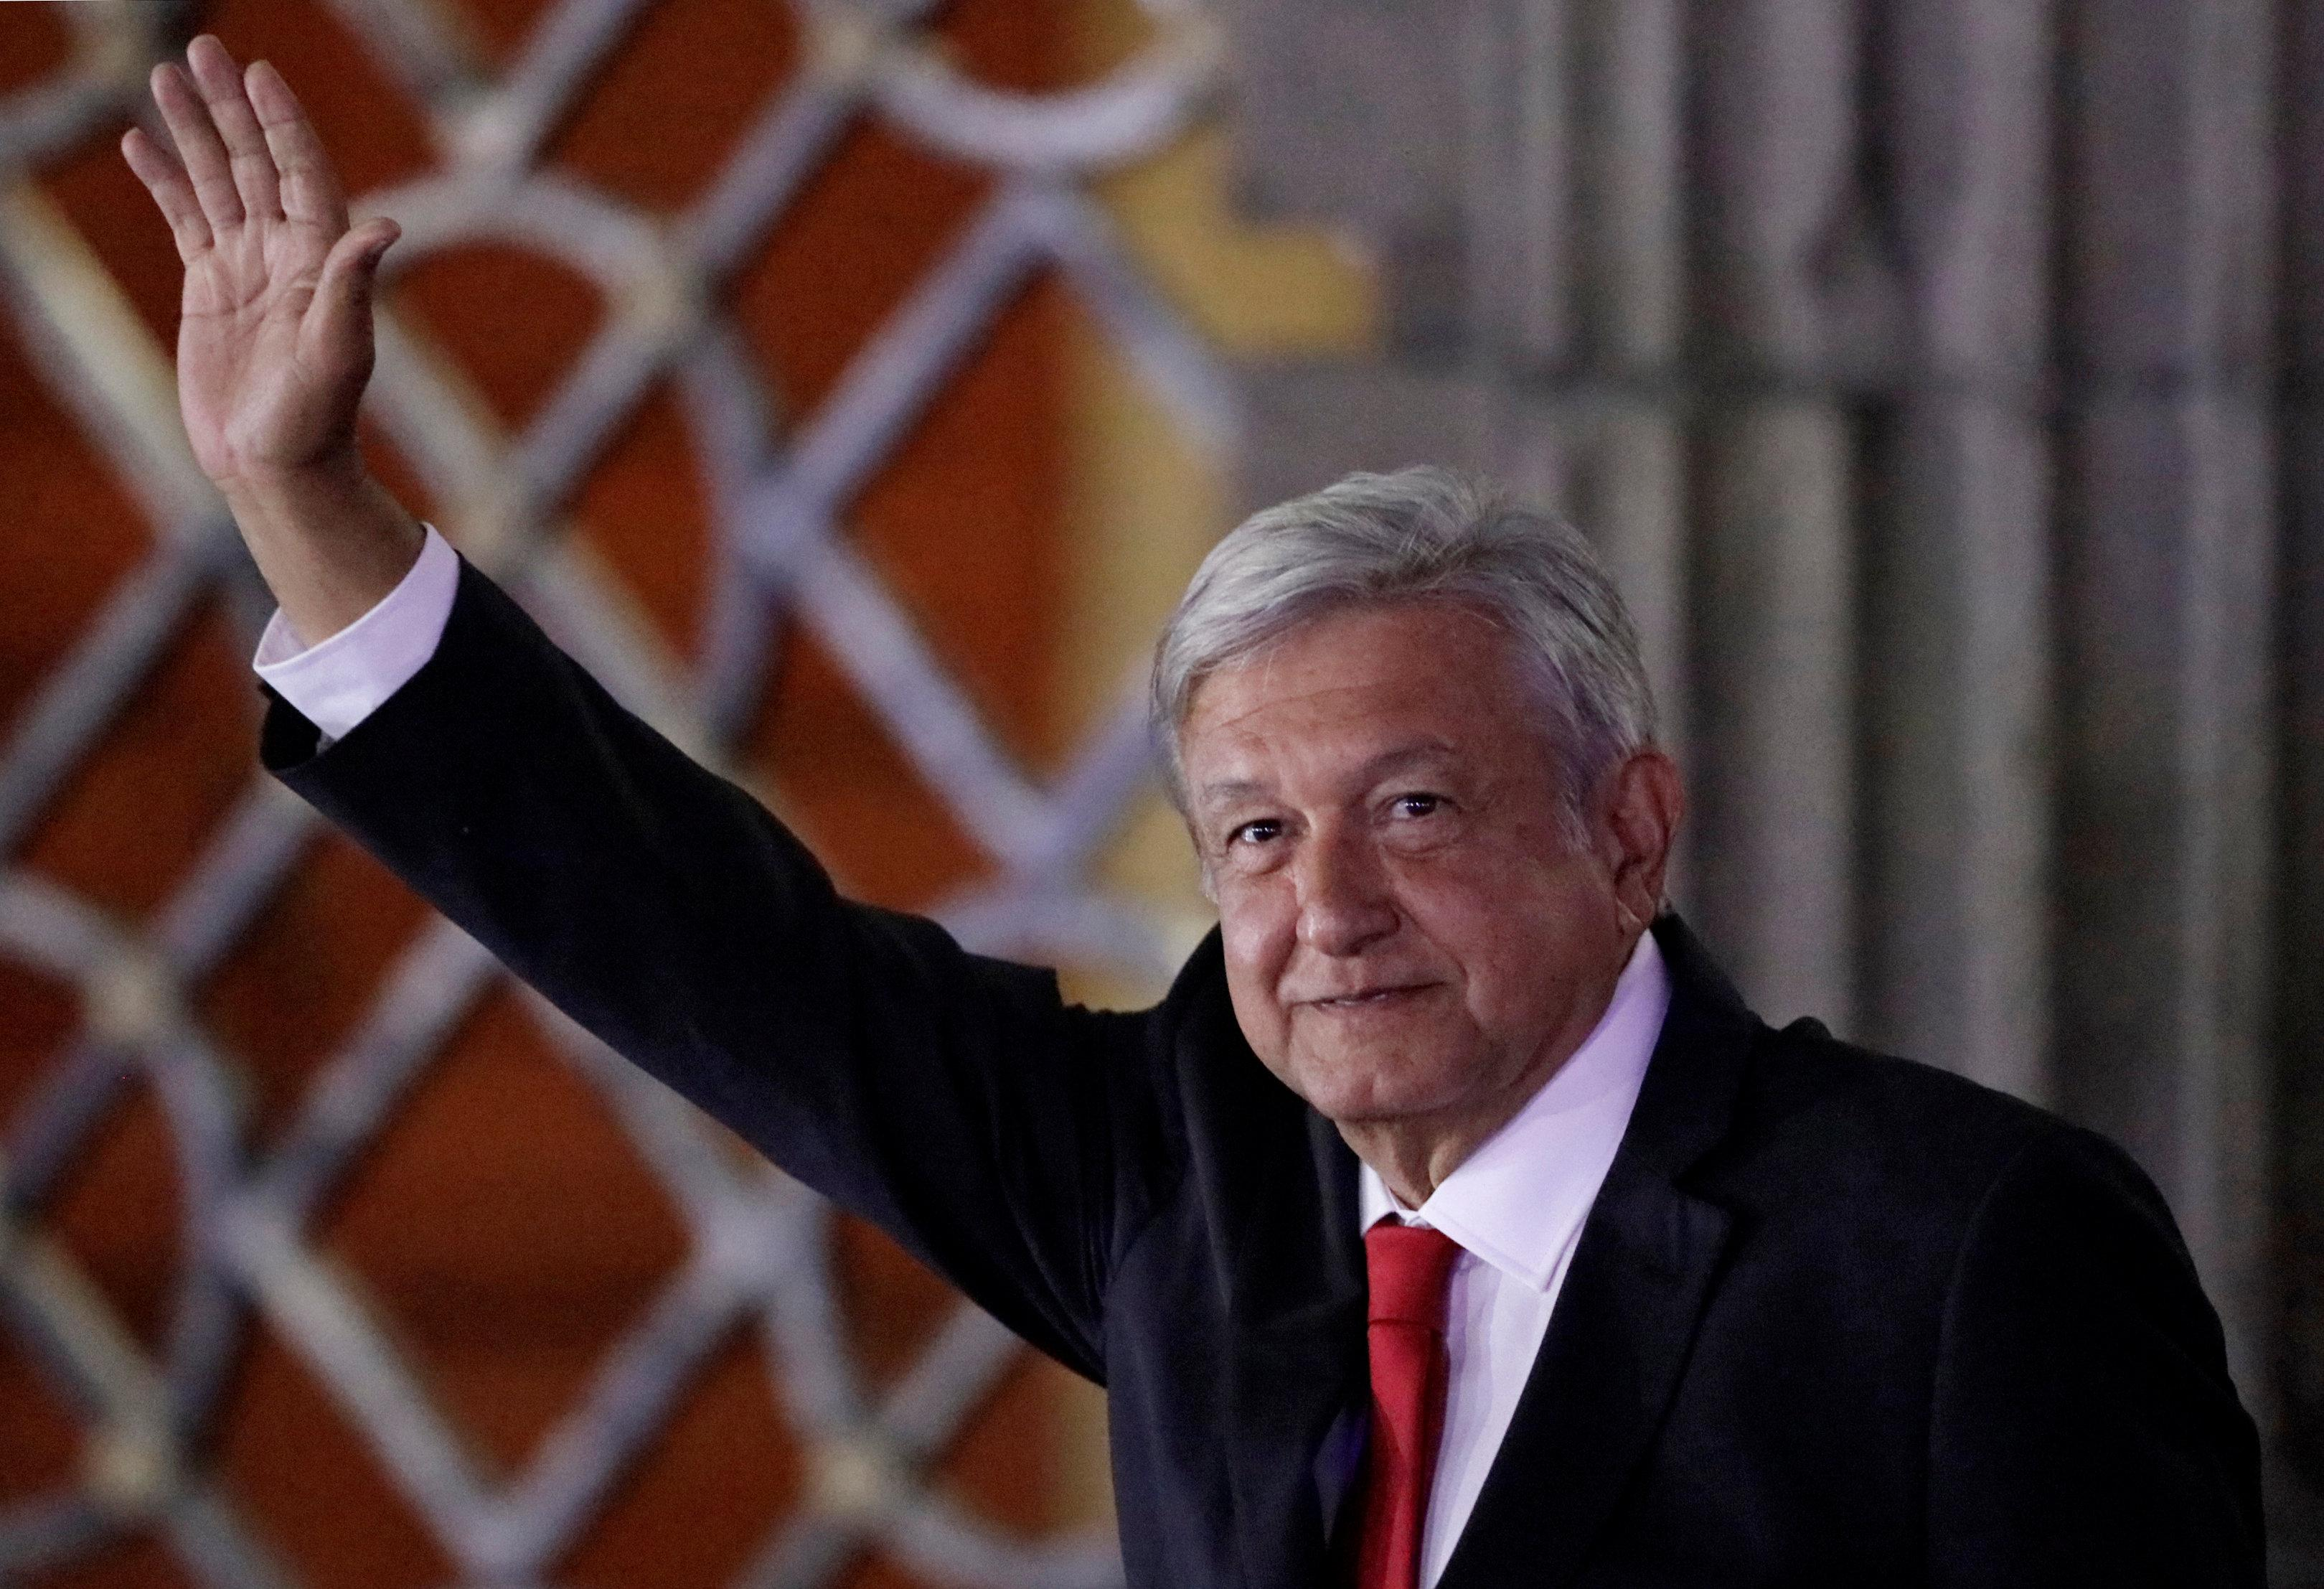 Leftist front-runner Andres Manuel Lopez Obrador of the National Regeneration Movement (MORENA) gestures while leaving the Palacio de Mineria after the first presidential debate in Mexico City, Mexico April 22, 2018. Henry Romero